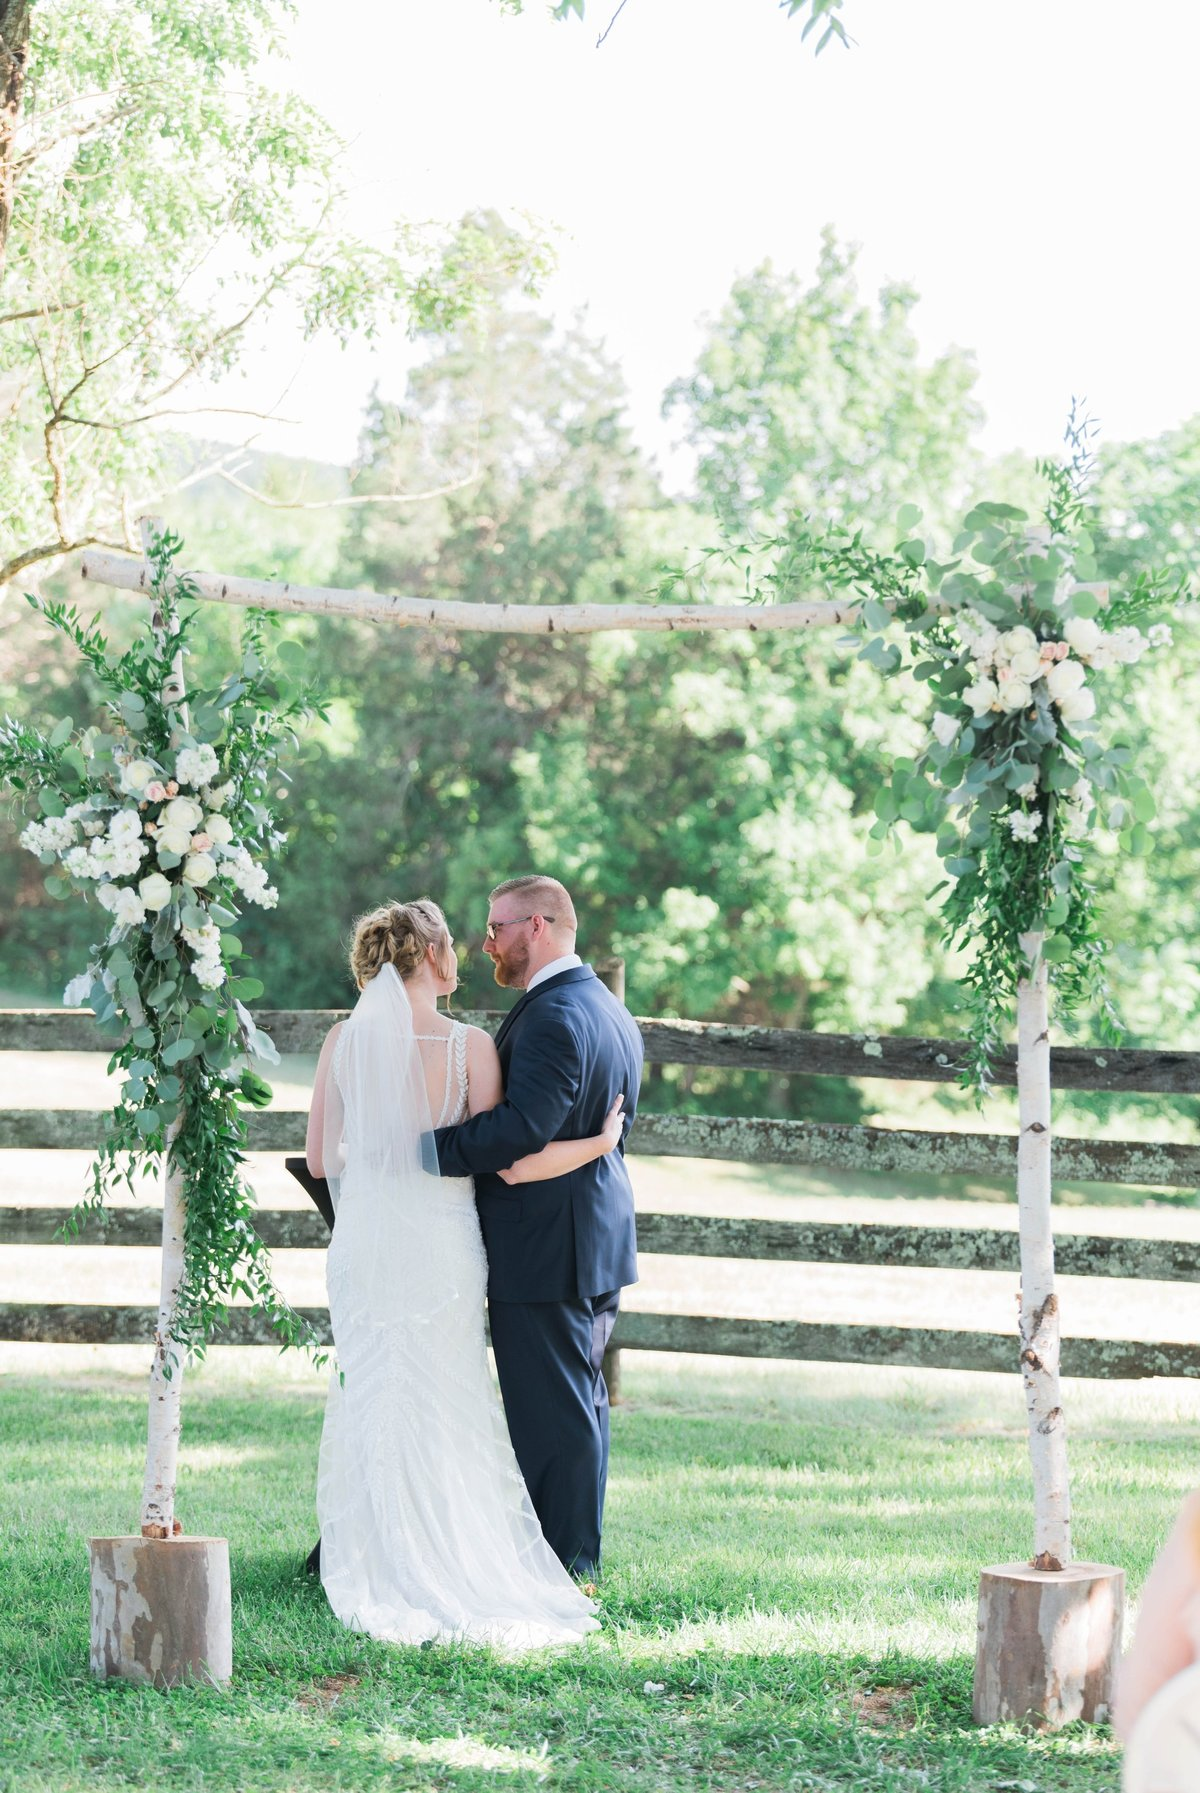 SorellaFarms_VirginiaWeddingPhotographer_BarnWedding_Lynchburgweddingphotographer_DanielleTyler+47(1)